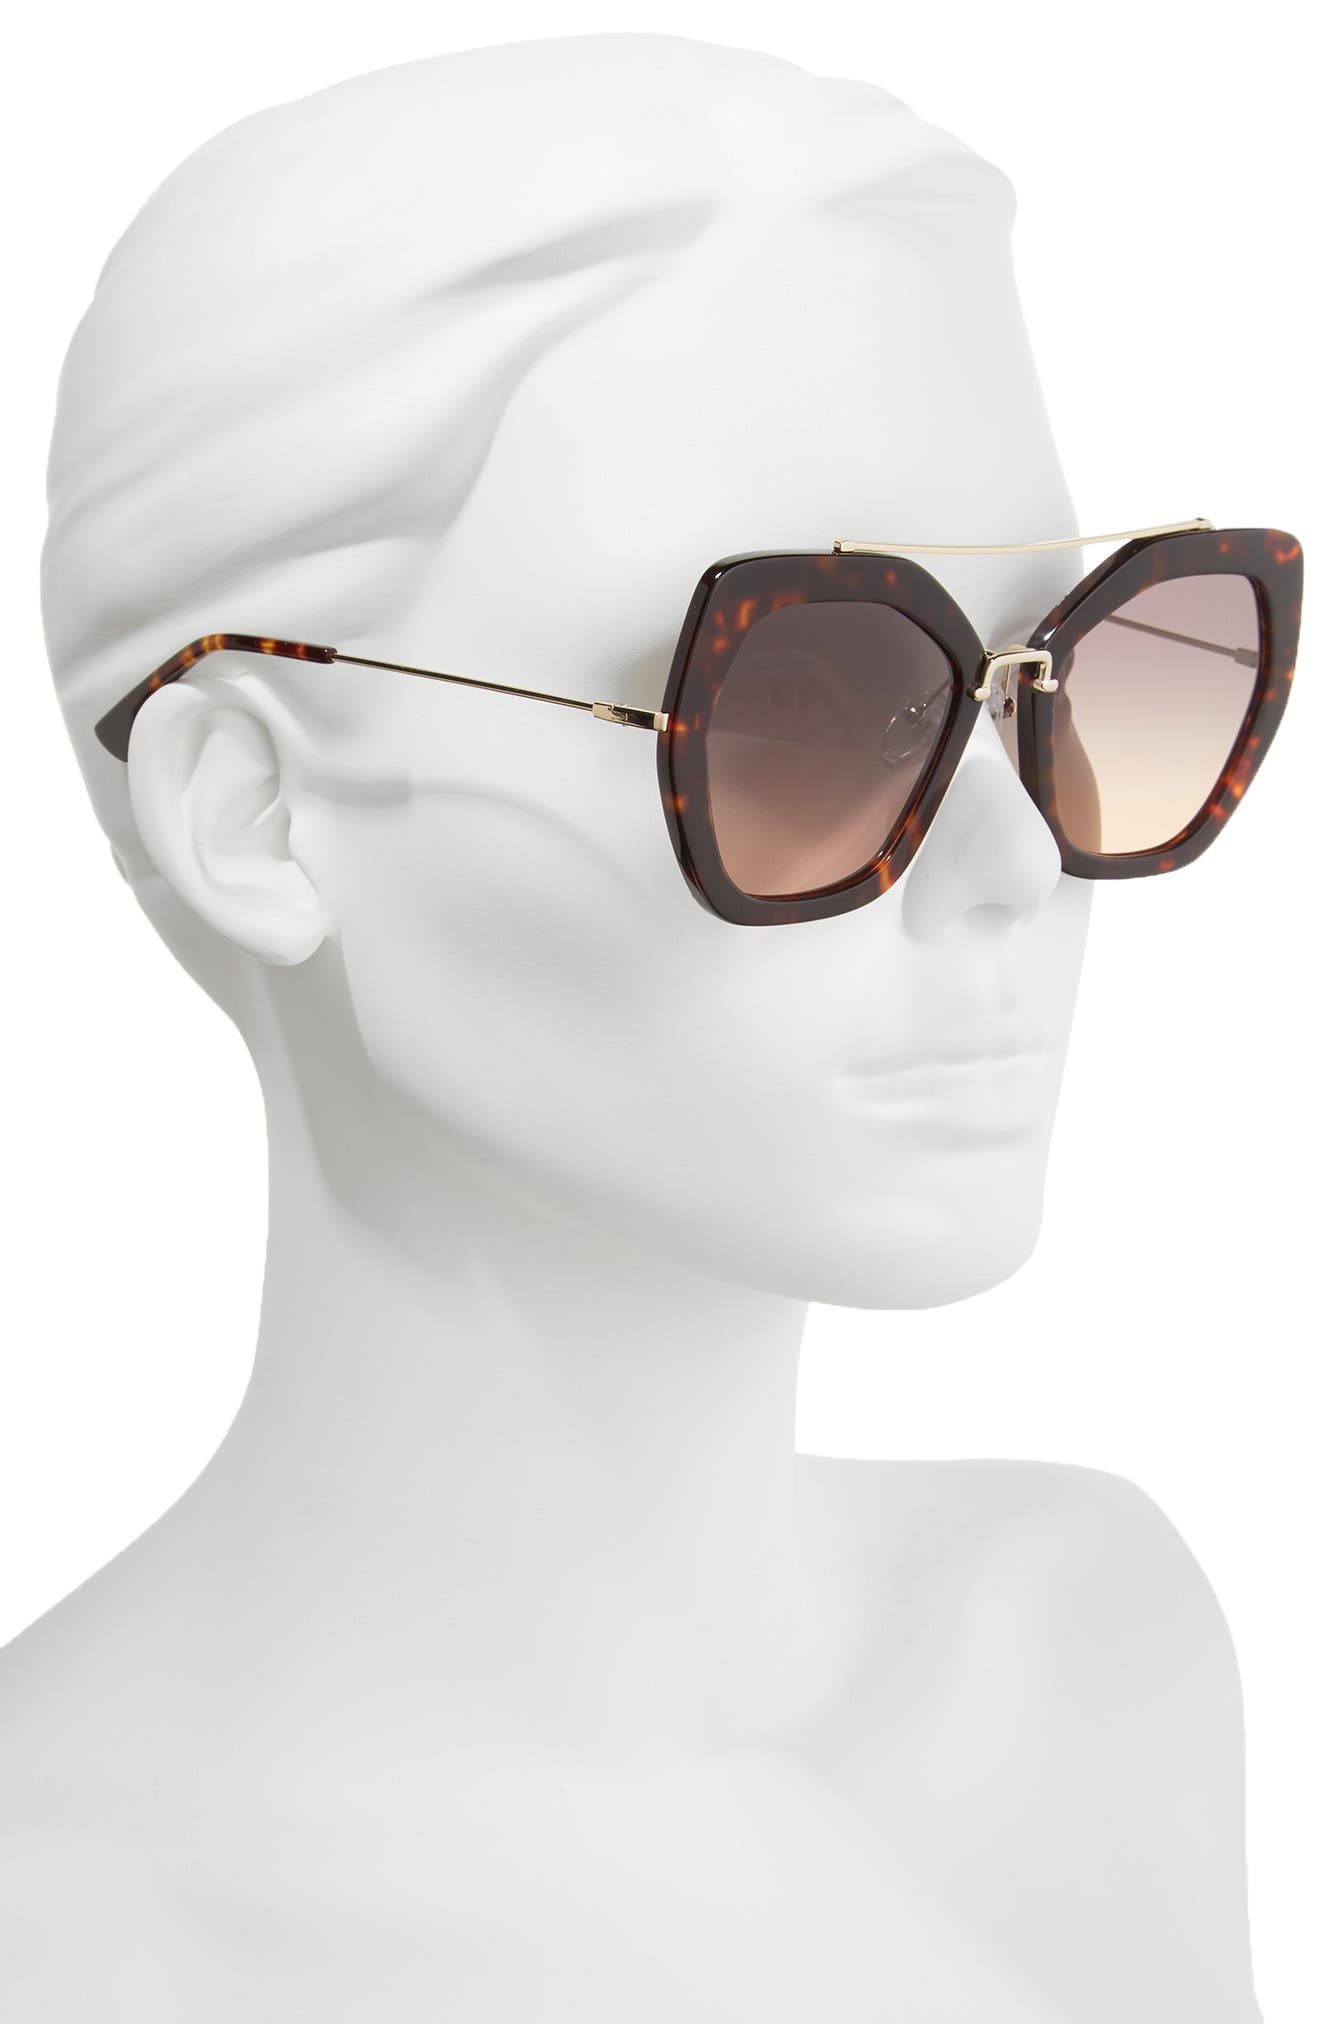 Bowery 55mm Geometric Sunglasses,                             Alternate thumbnail 2, color,                             Tortoise